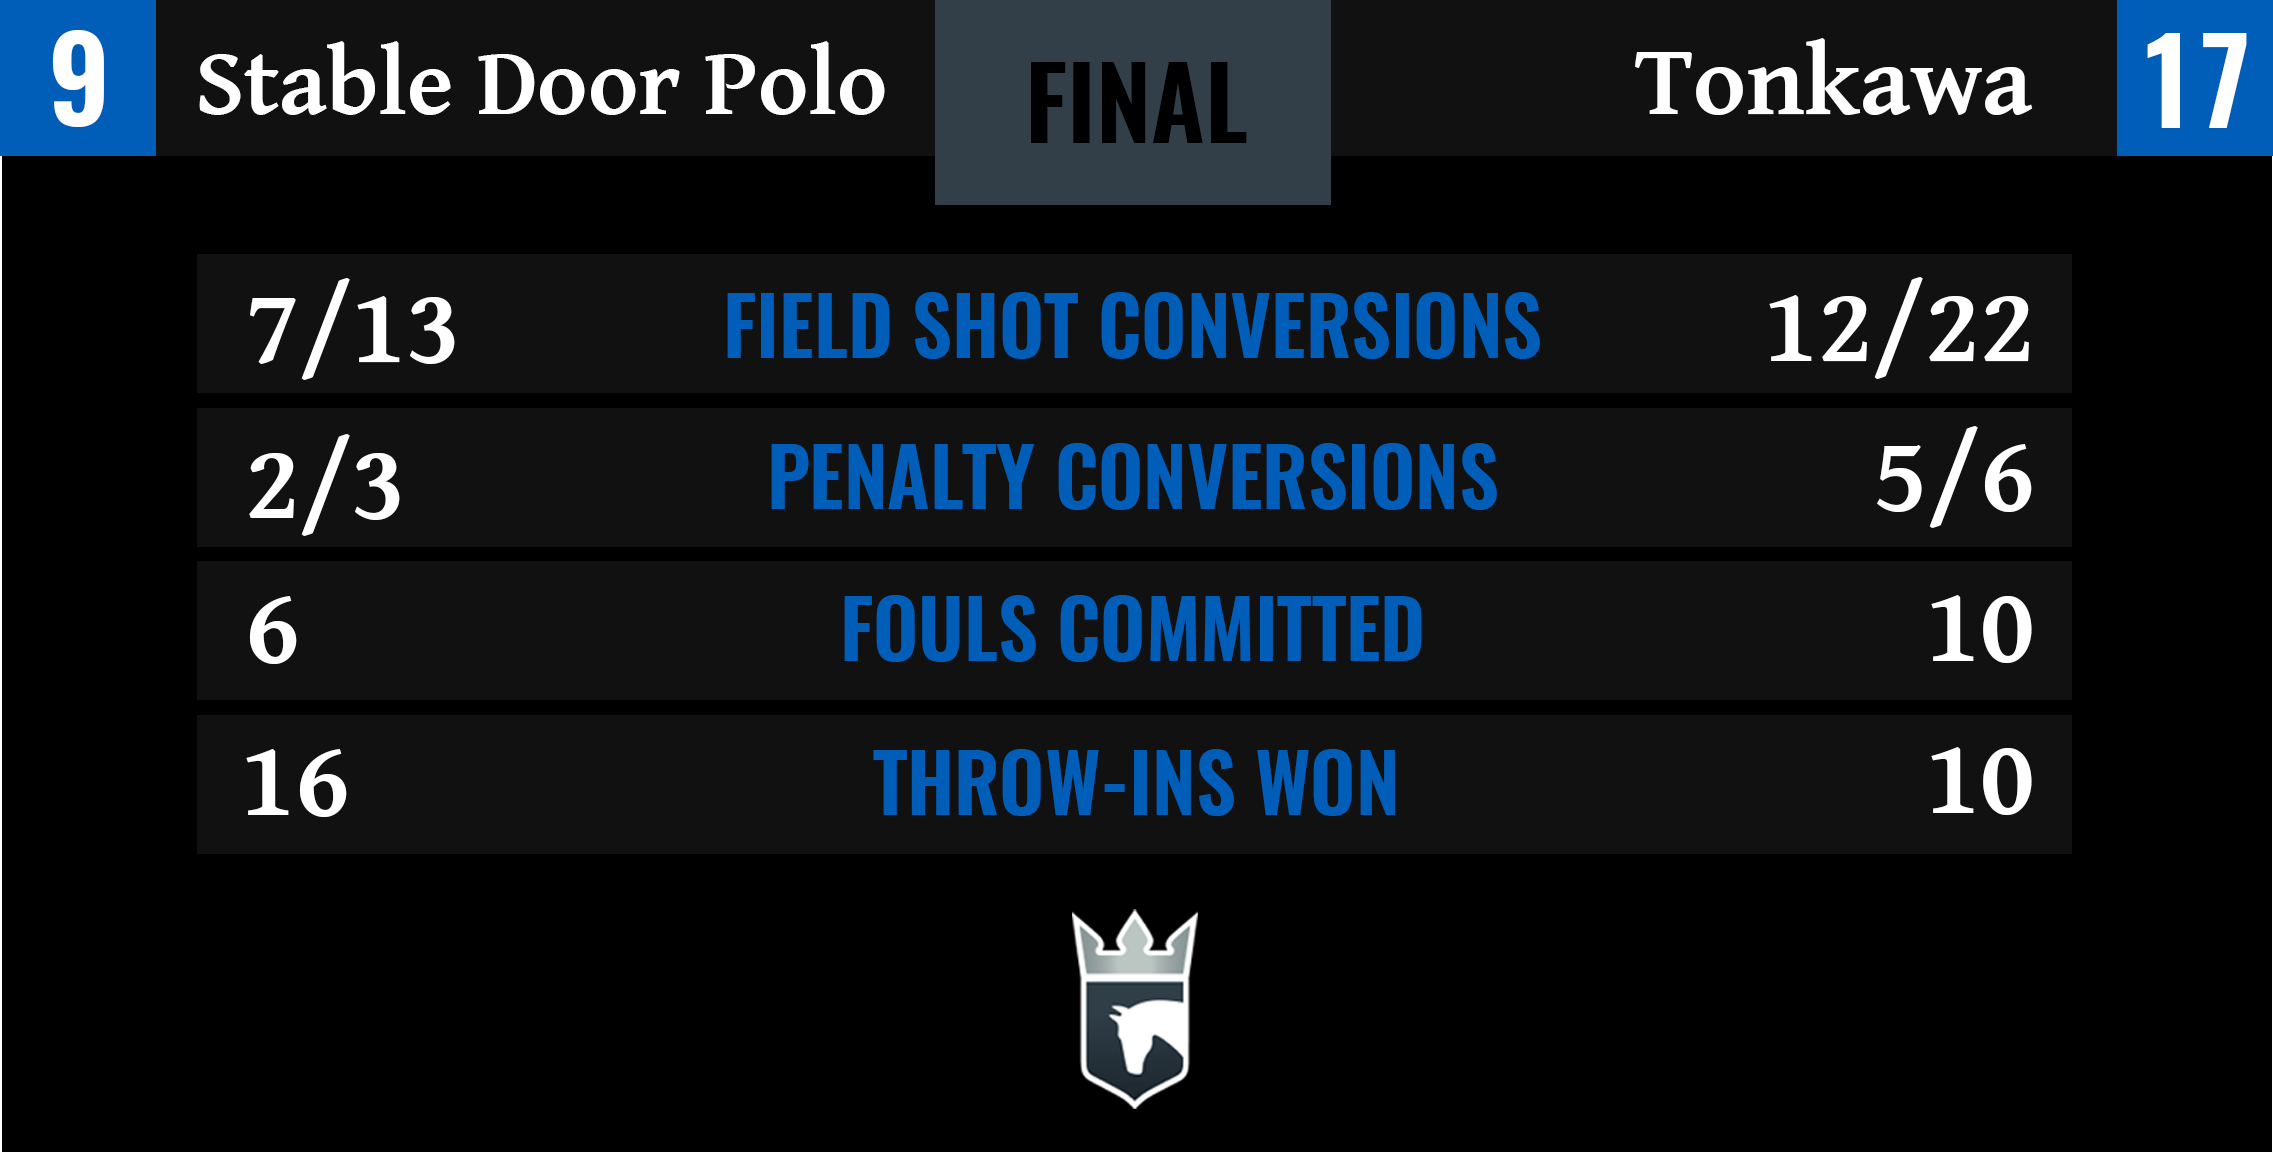 Stable Door Polo vs Tonkawa Final Stats